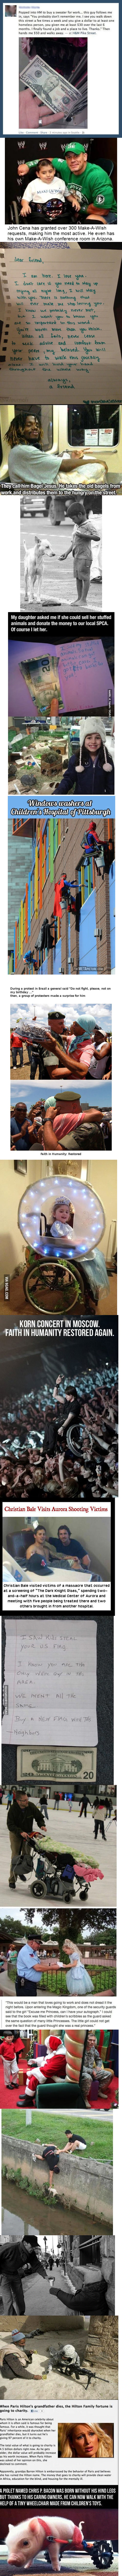 Faith in humanity photo collection